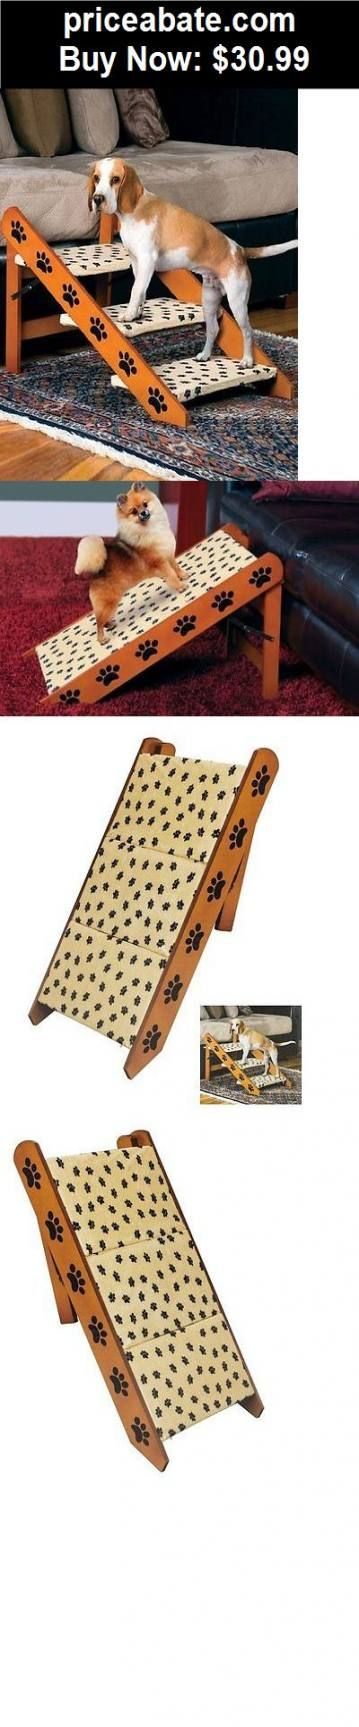 Diy dog stairs to bed couch 31+ new ideas #diy | Dog ...